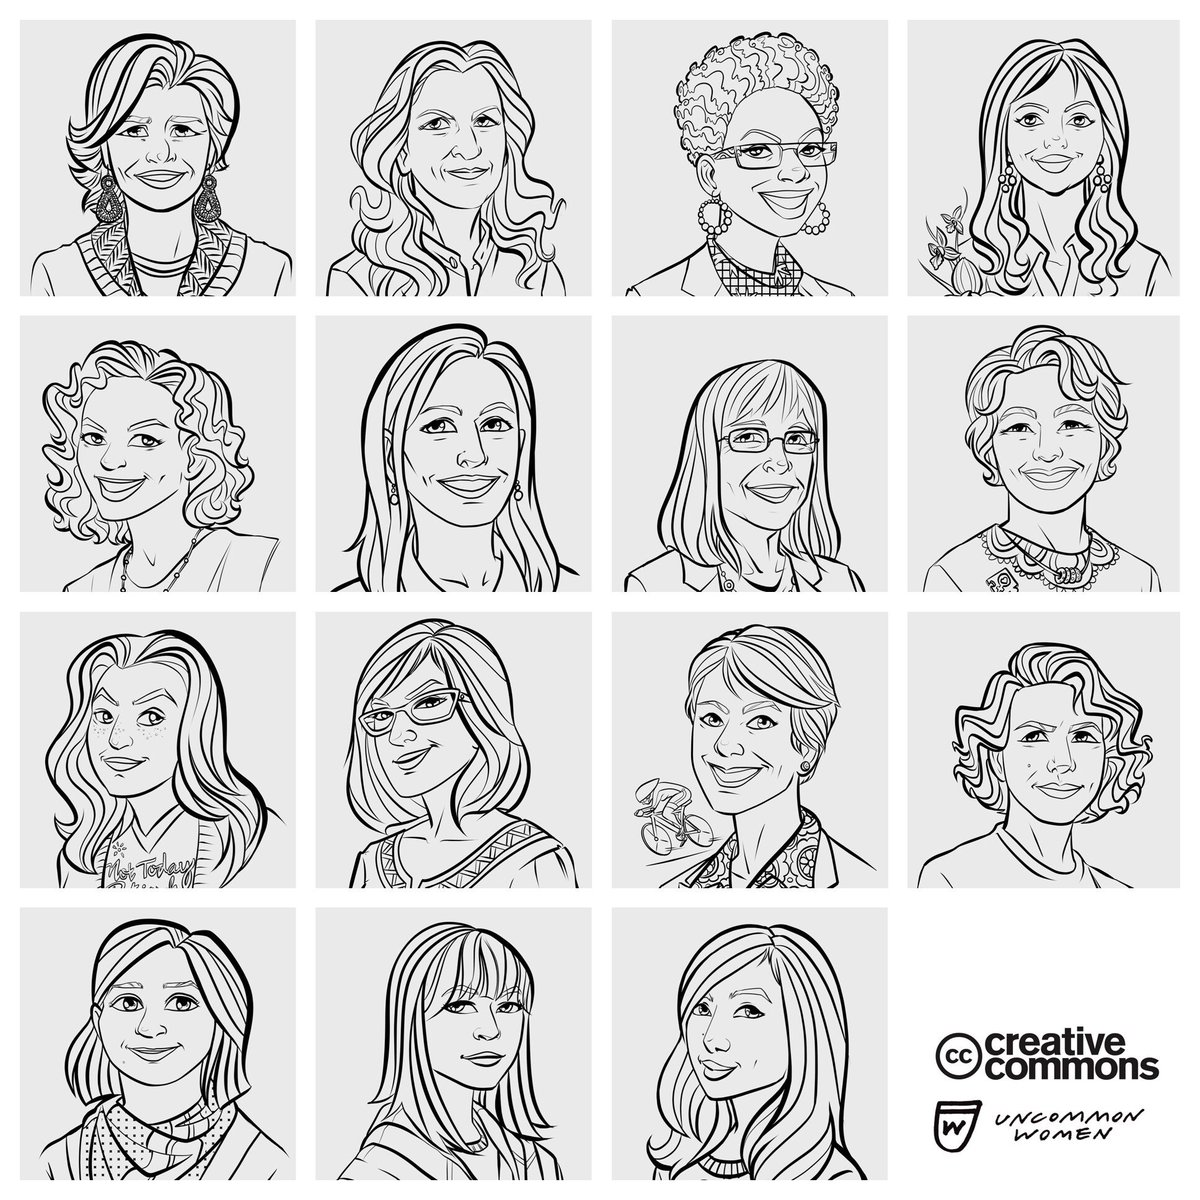 Image result for uncommon women colouring book